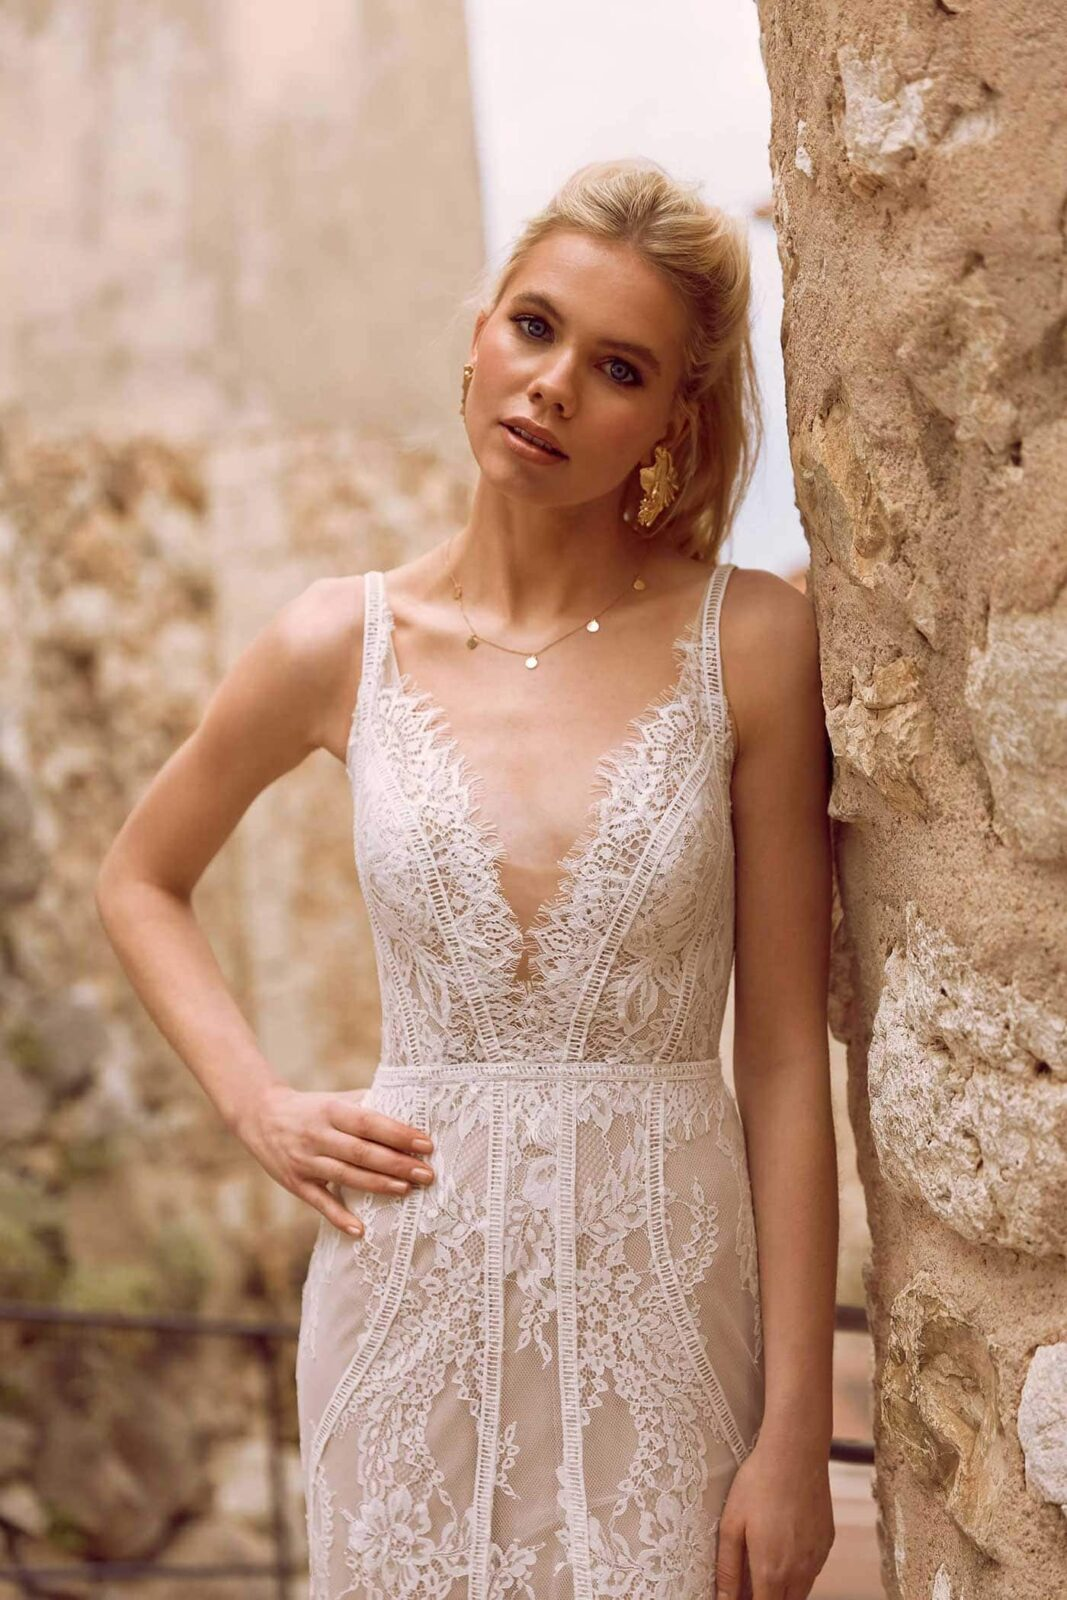 EZRA-ML9718-FULL-LACE-FITTED-GOWN-WITH-PLUNGING-V-NECKLINE-LACE-STRAPS-AND-ZIP-UP-BACK-WEDDING-DRESS-MADI-LANE-BRIDAL3